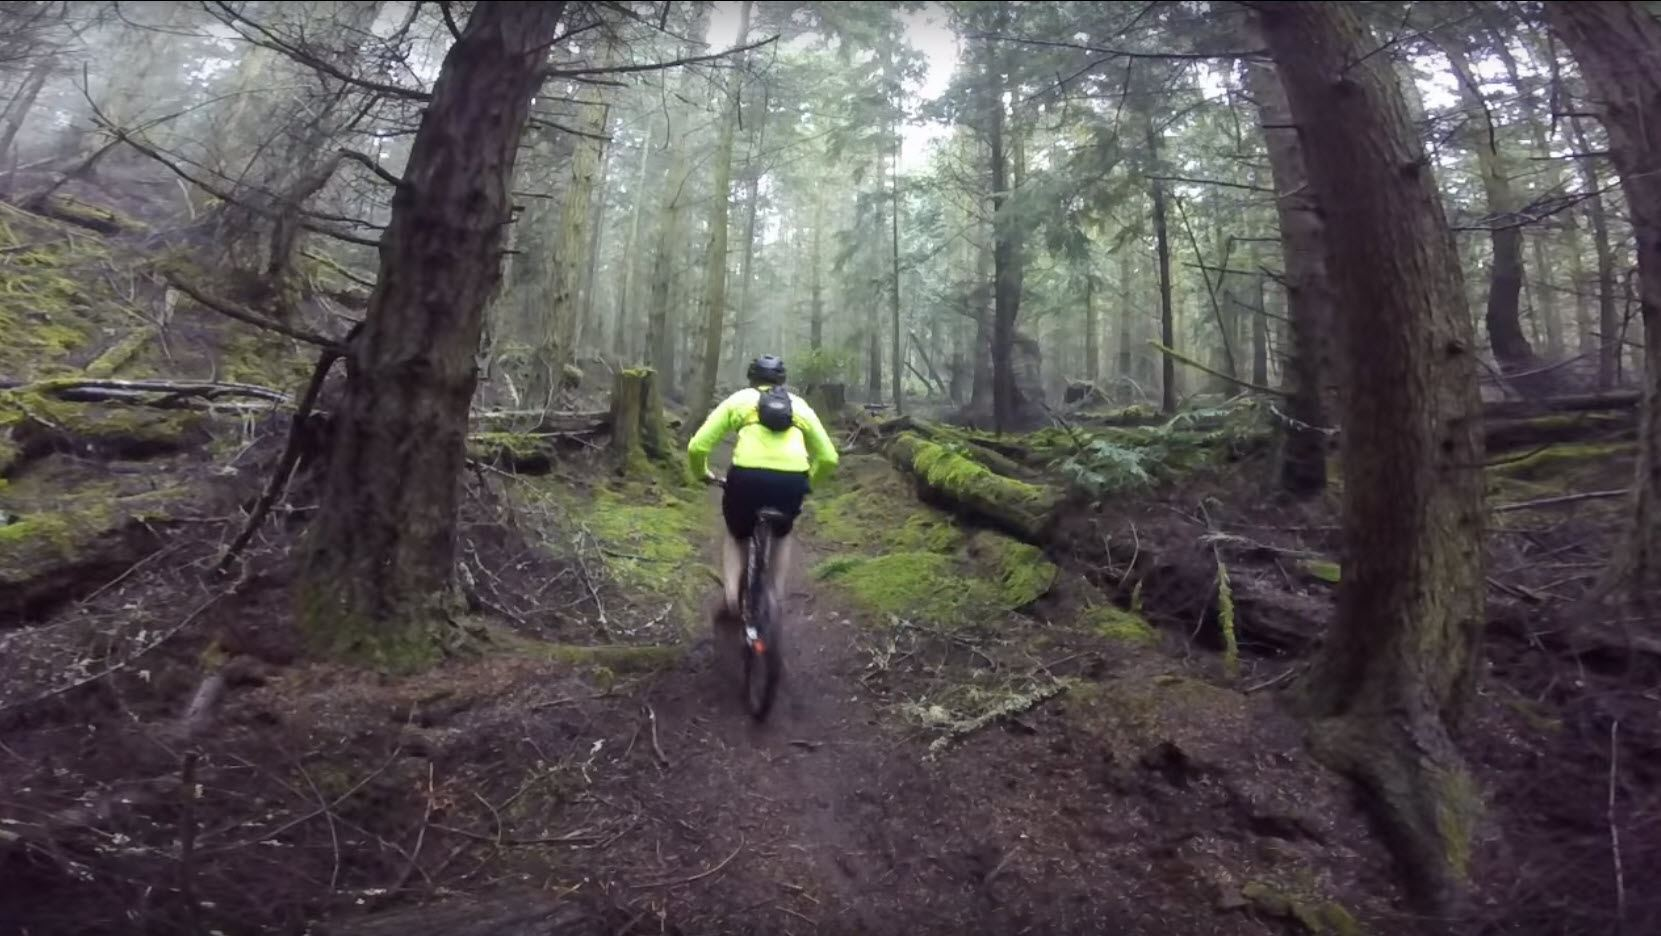 Ebey Mountain Biking YouTube capture